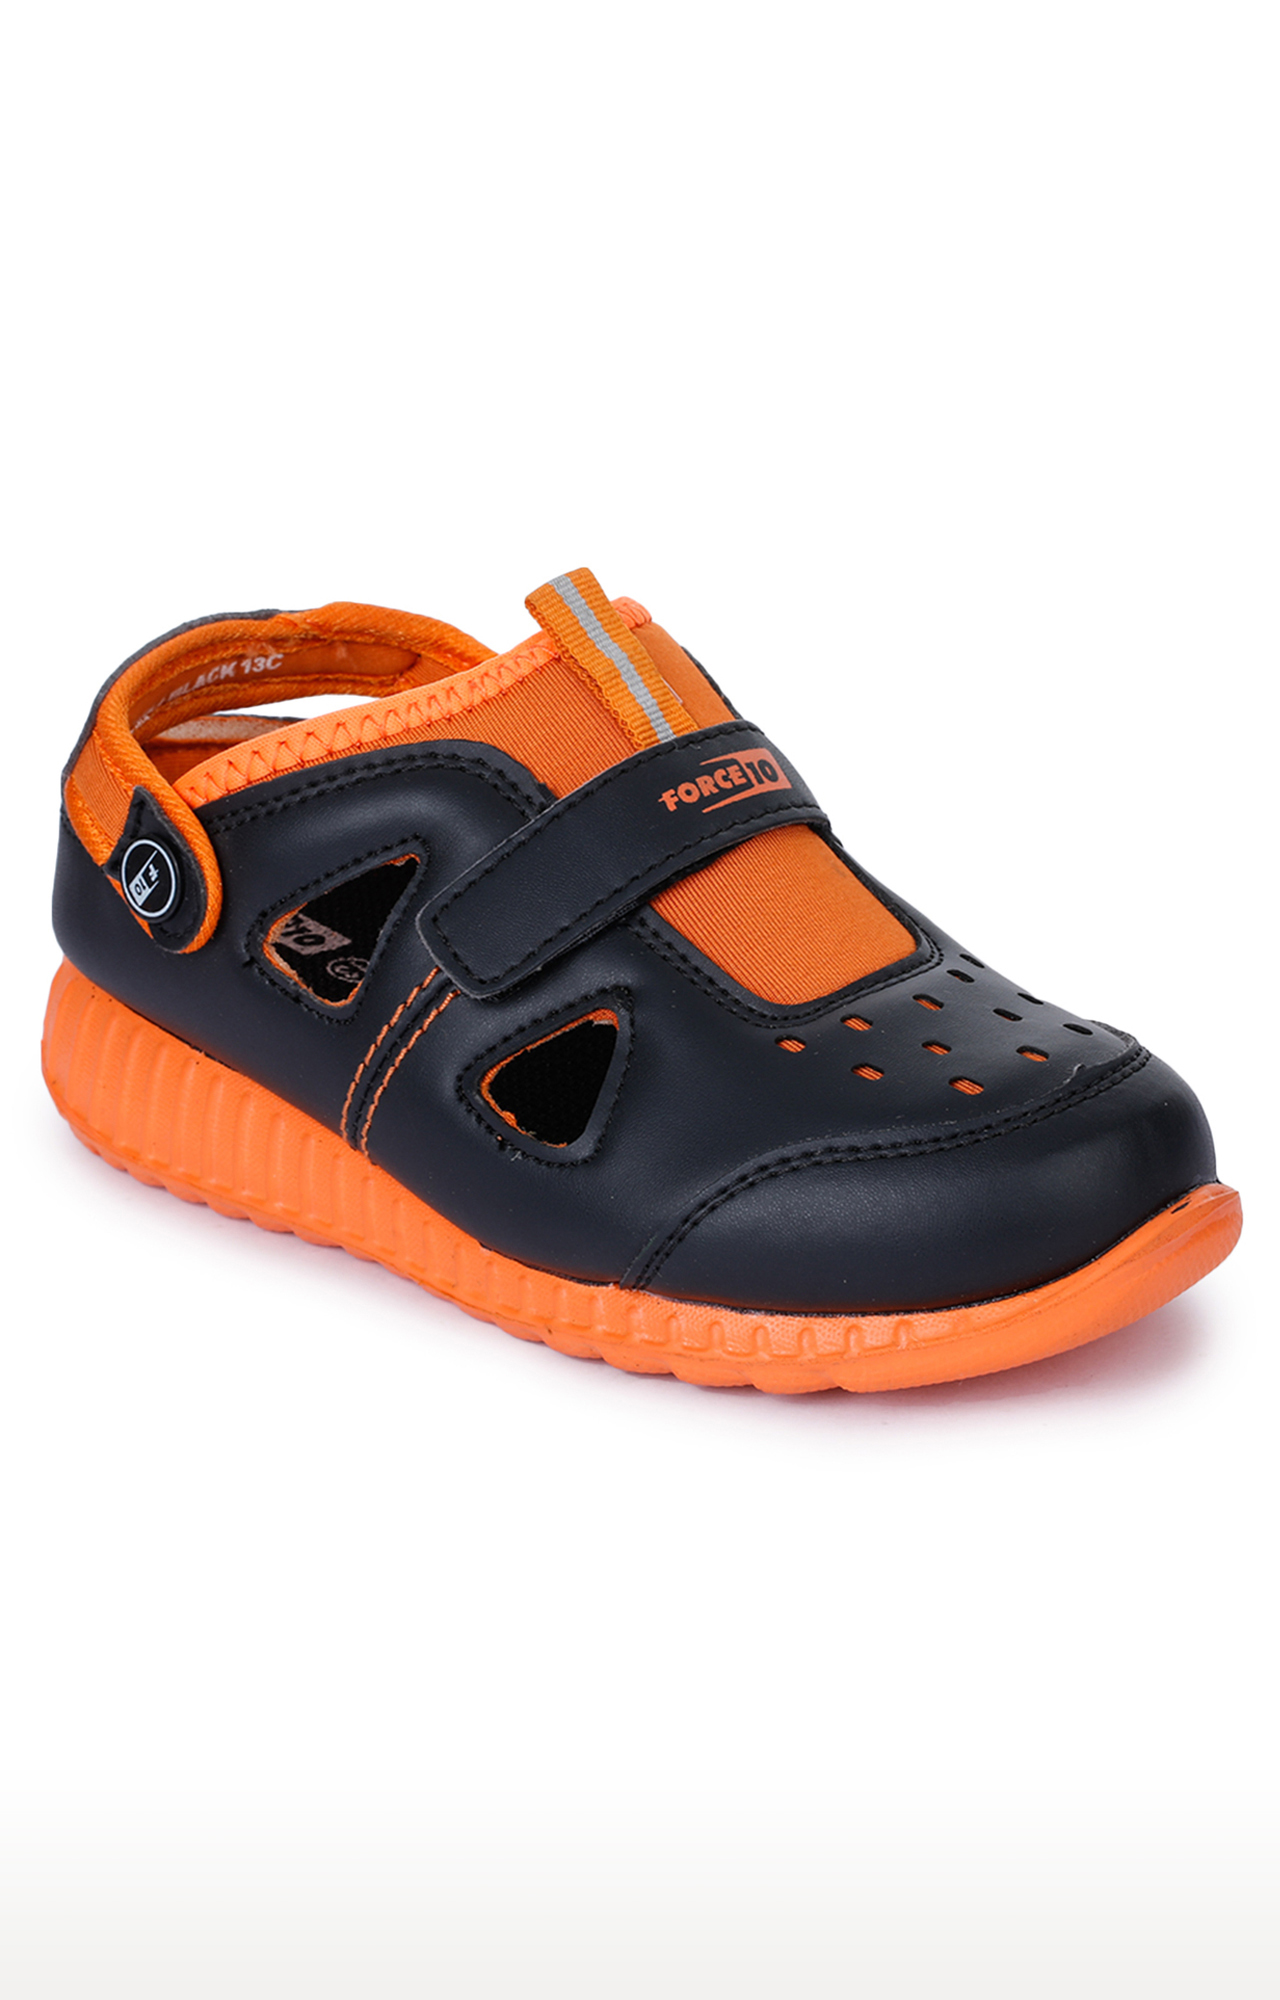 Liberty | Force 10 by Liberty Black and Orange Sandals